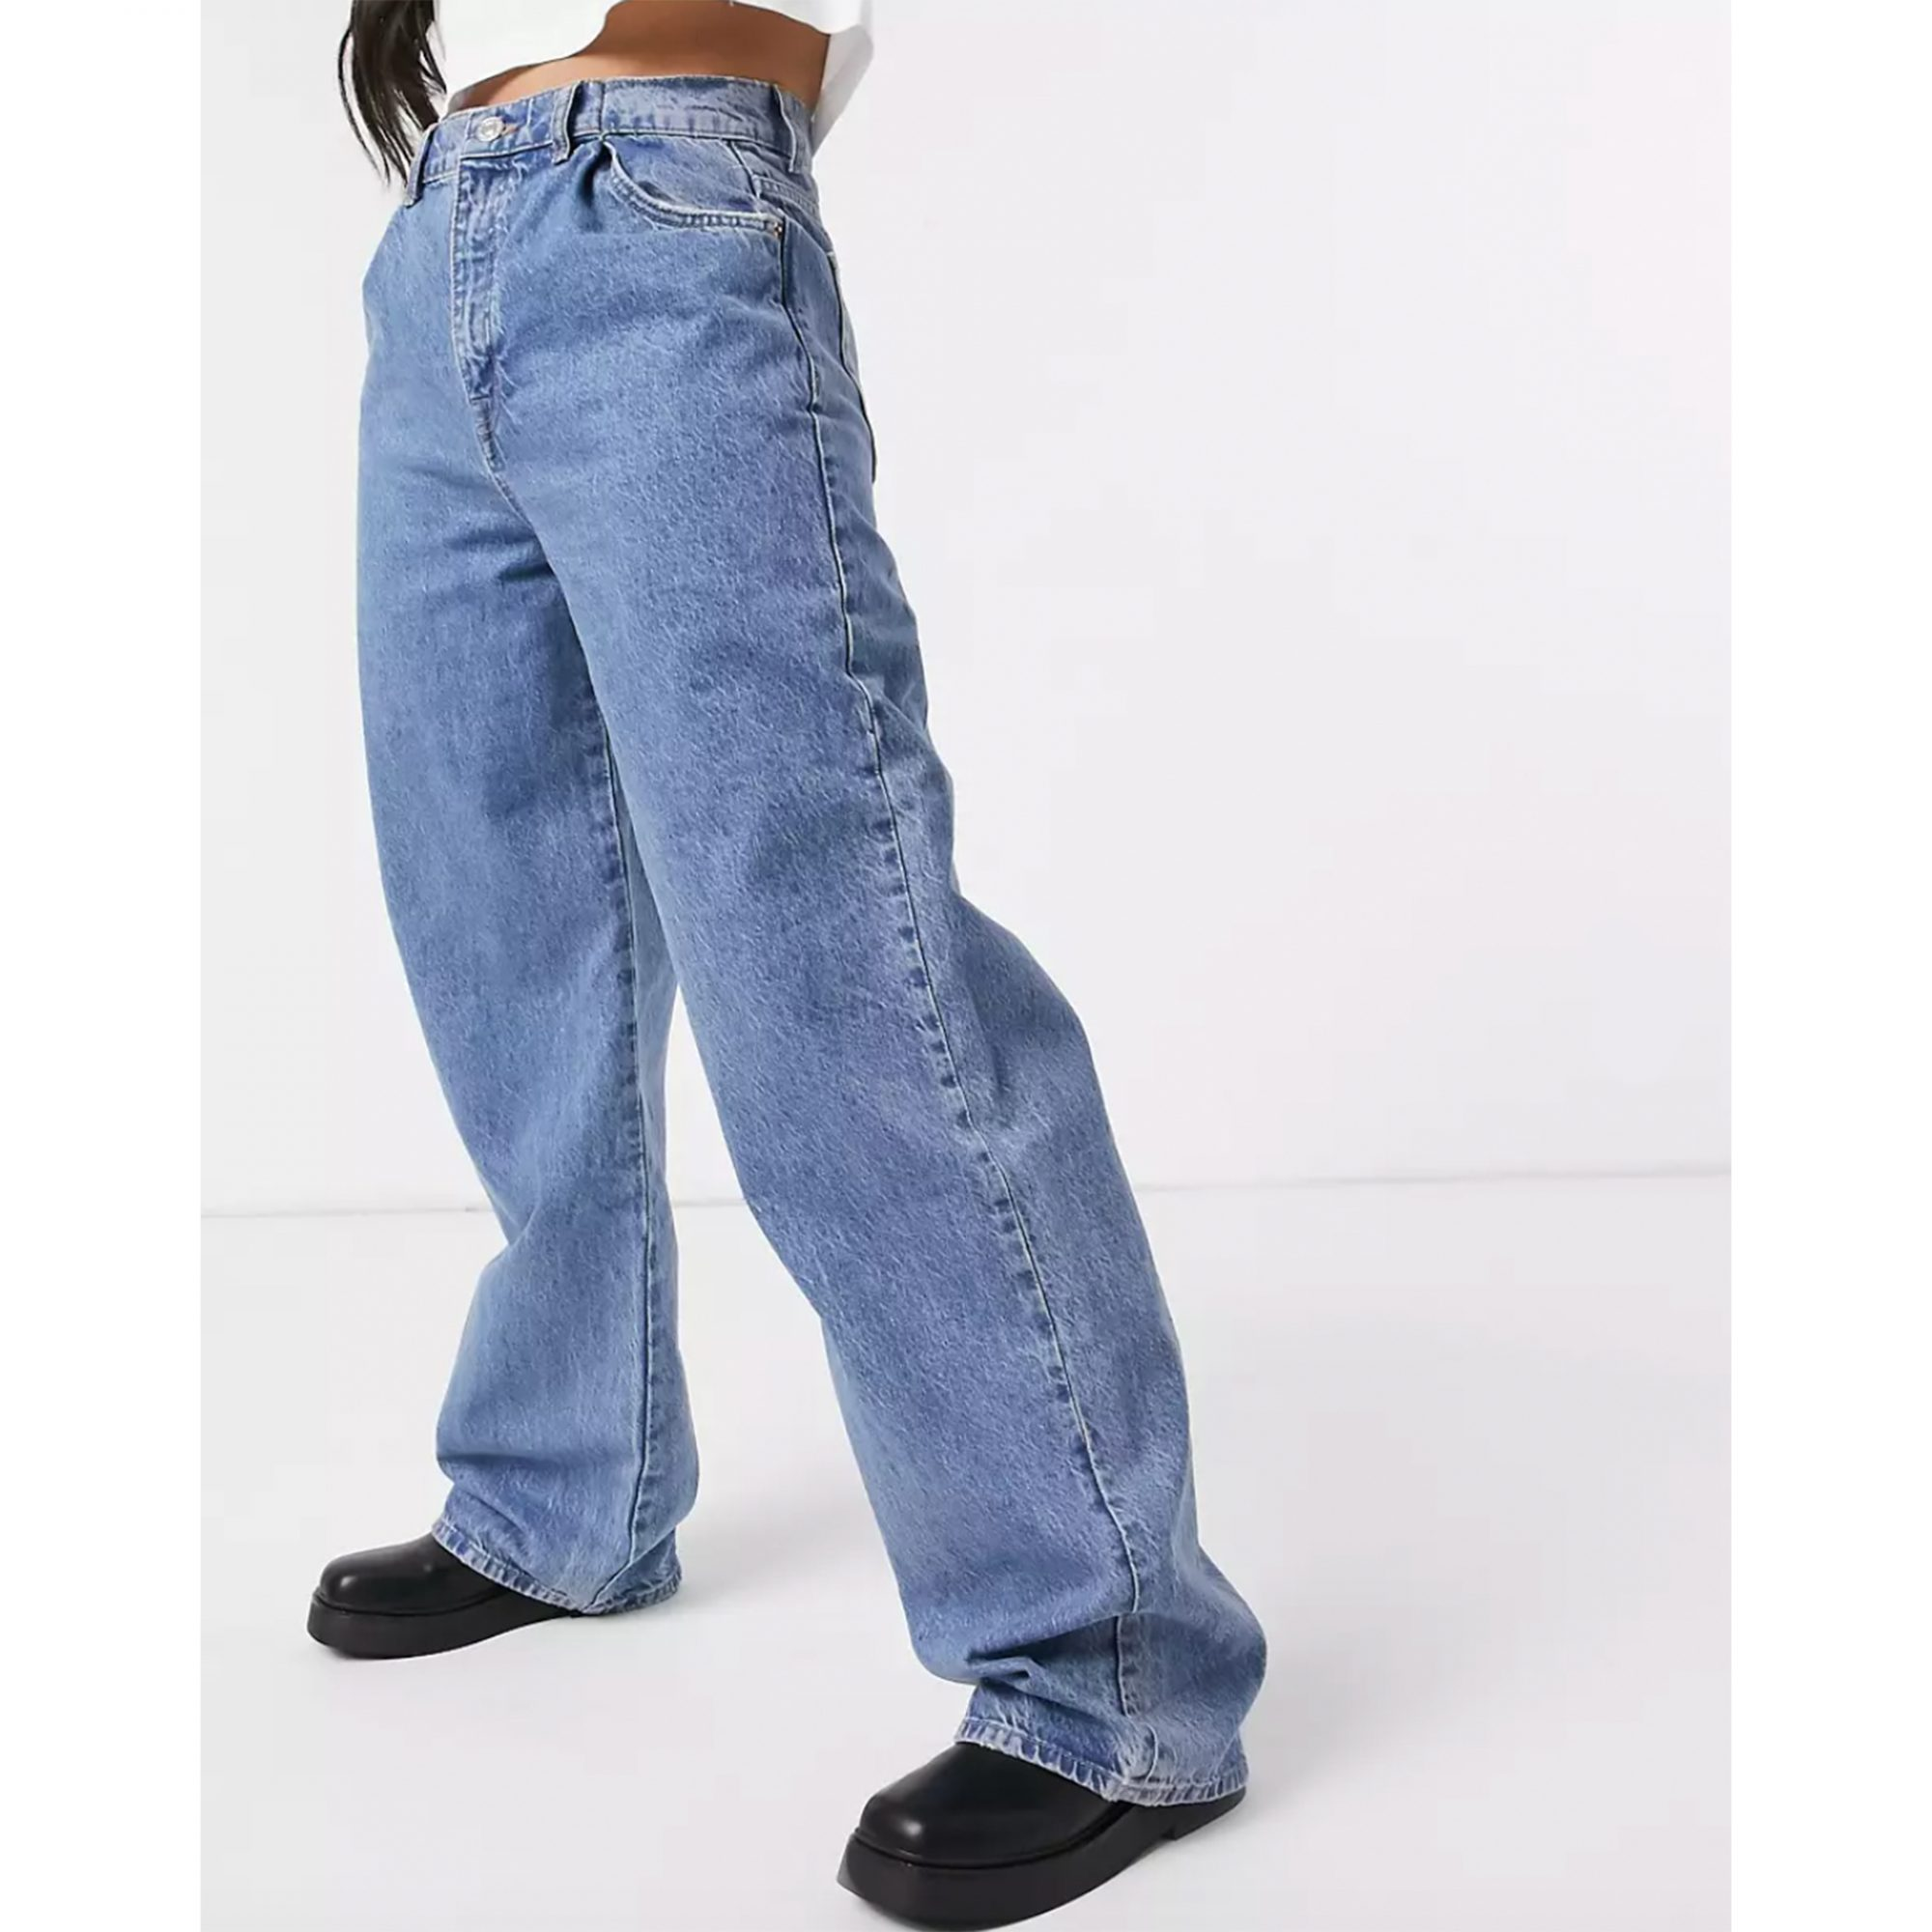 asos-baggy-90s-jeans, best-jeans-for-women